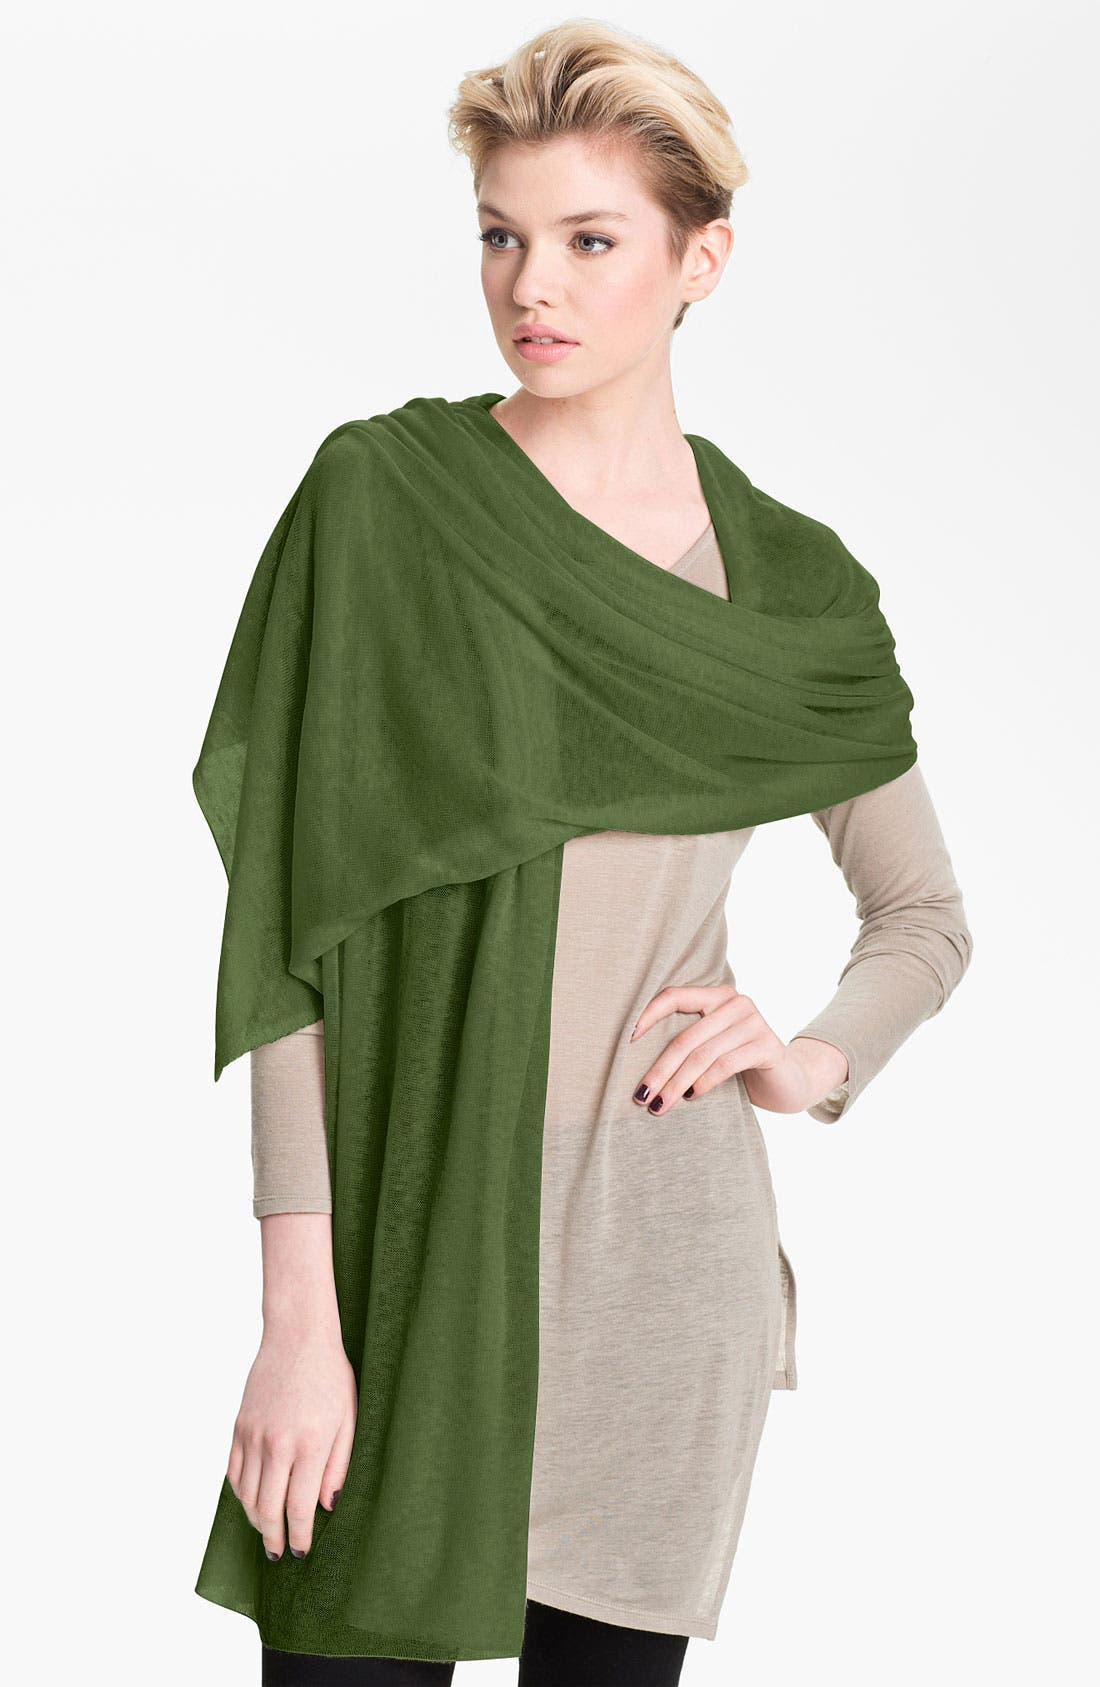 Alternate Image 1 Selected - Nordstrom 'Whisper' Cashmere Wrap